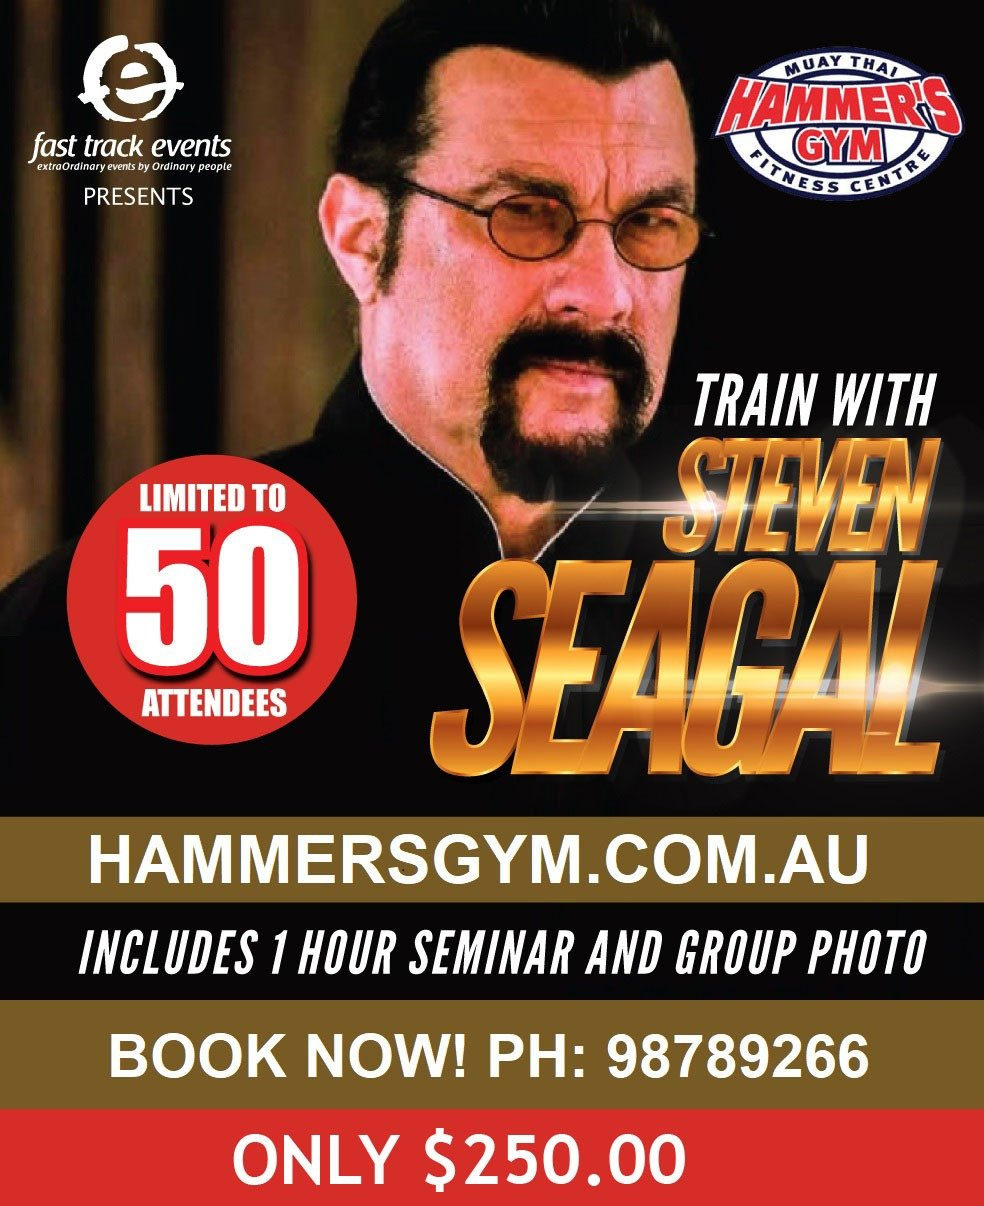 Steven Seagal at Hammers Gym (Only $250.00) 8